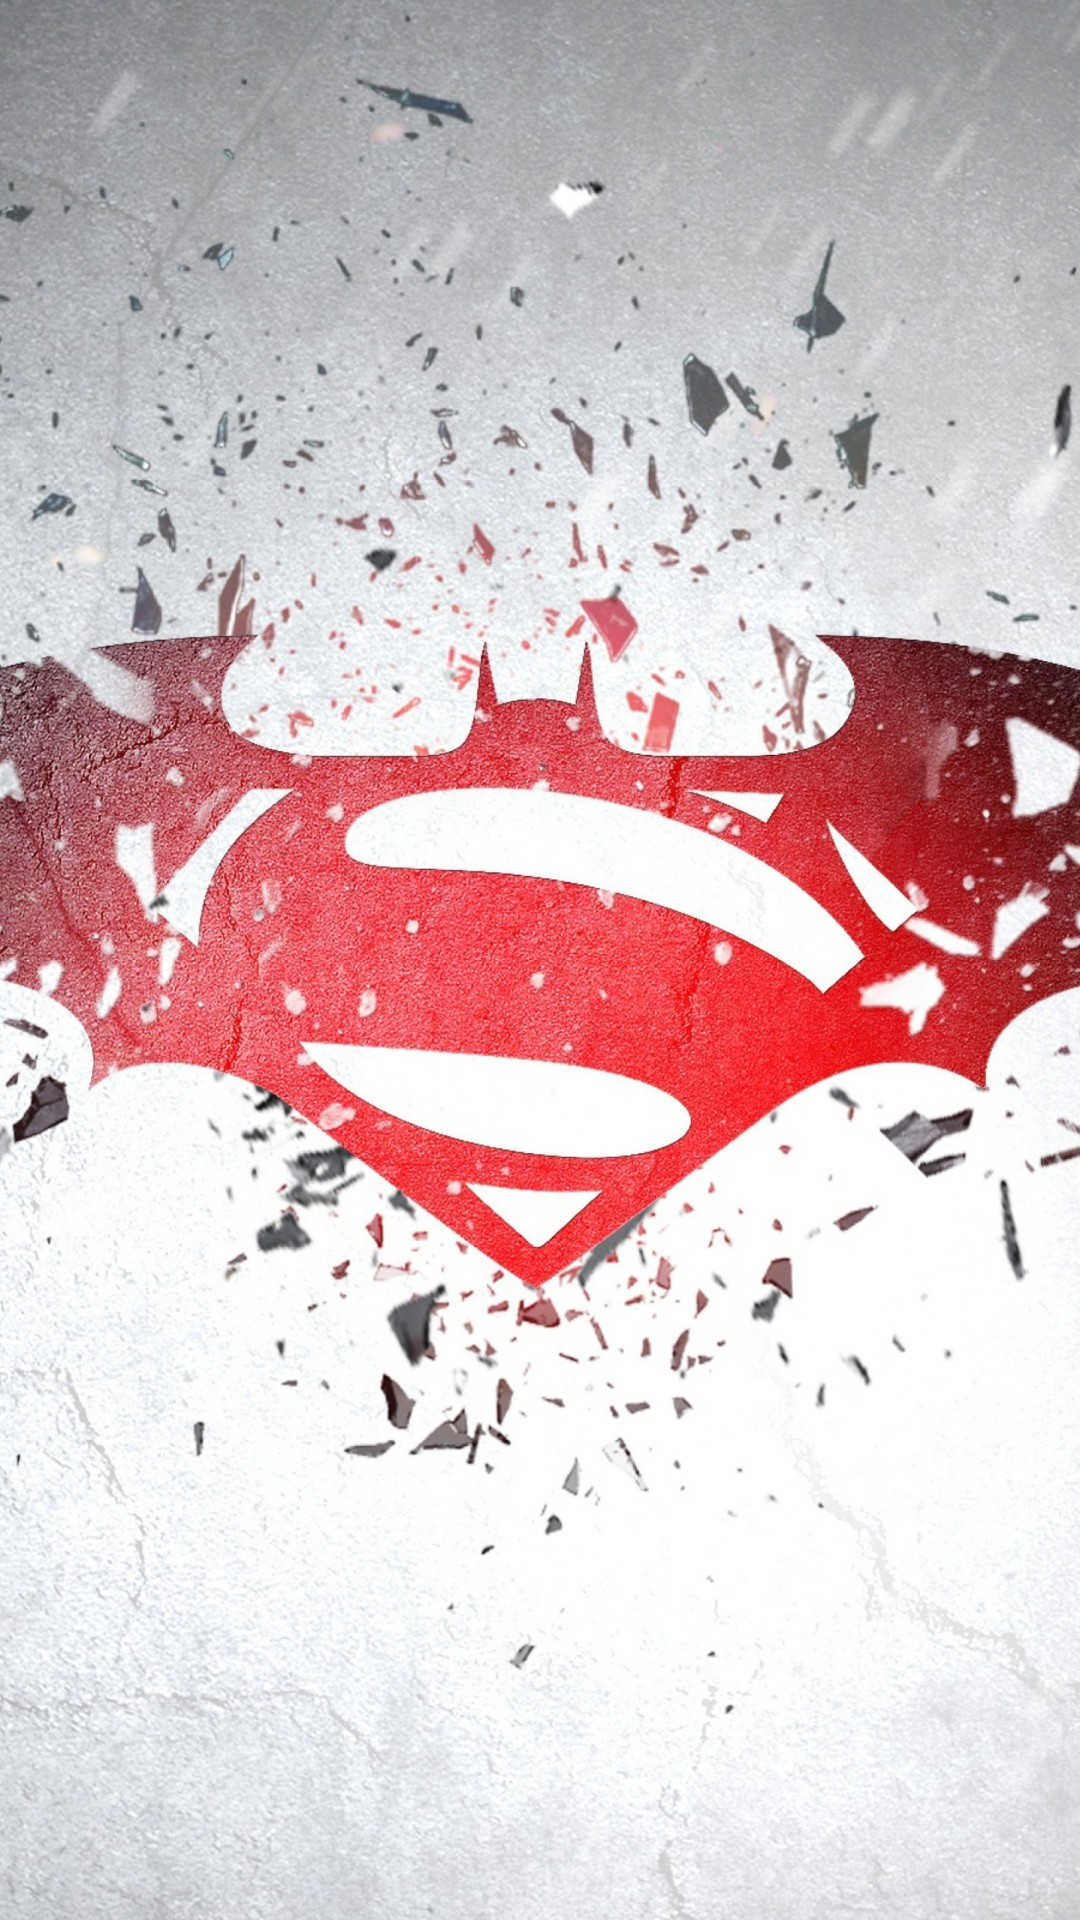 Superman Iphone Background Download Free.